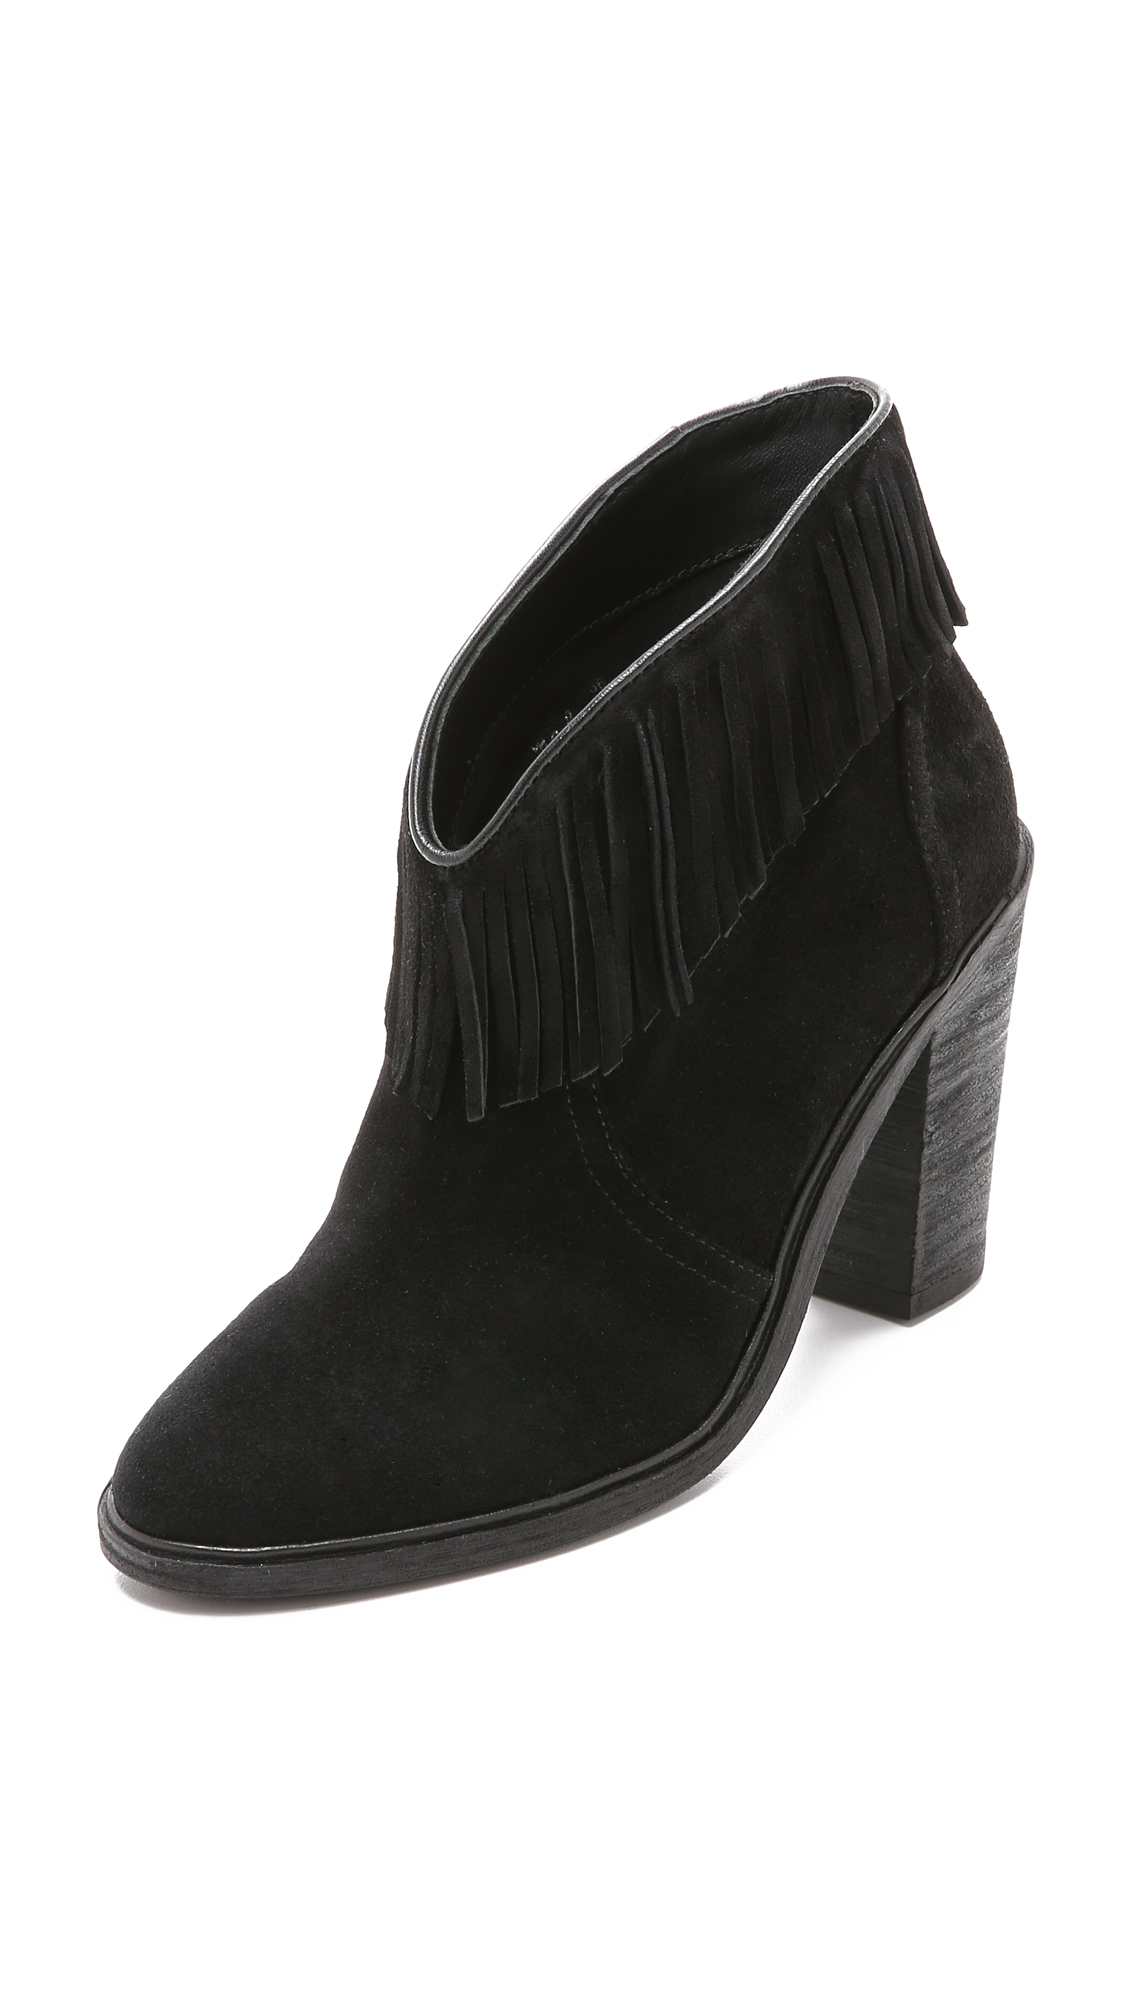 Joie Loren Fringe-Trim Suede Booties In Black;Mousse